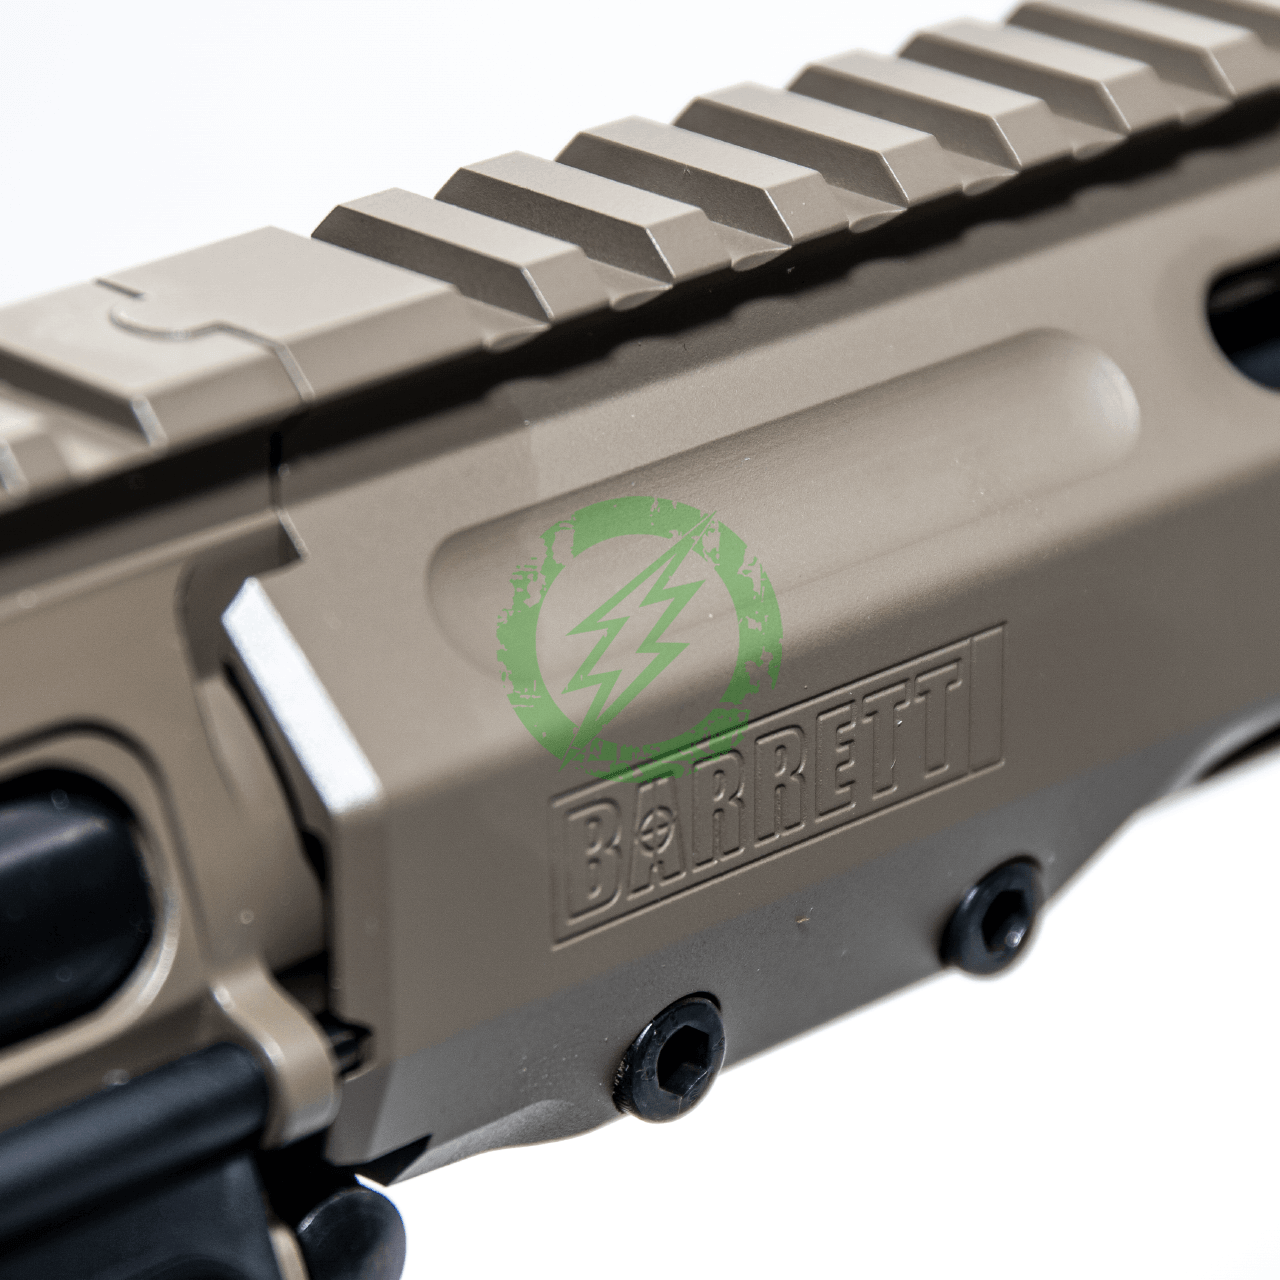 EMG Krytac Barrett Firearms REC7 DI AR15 AEG Training Rifle fde logo